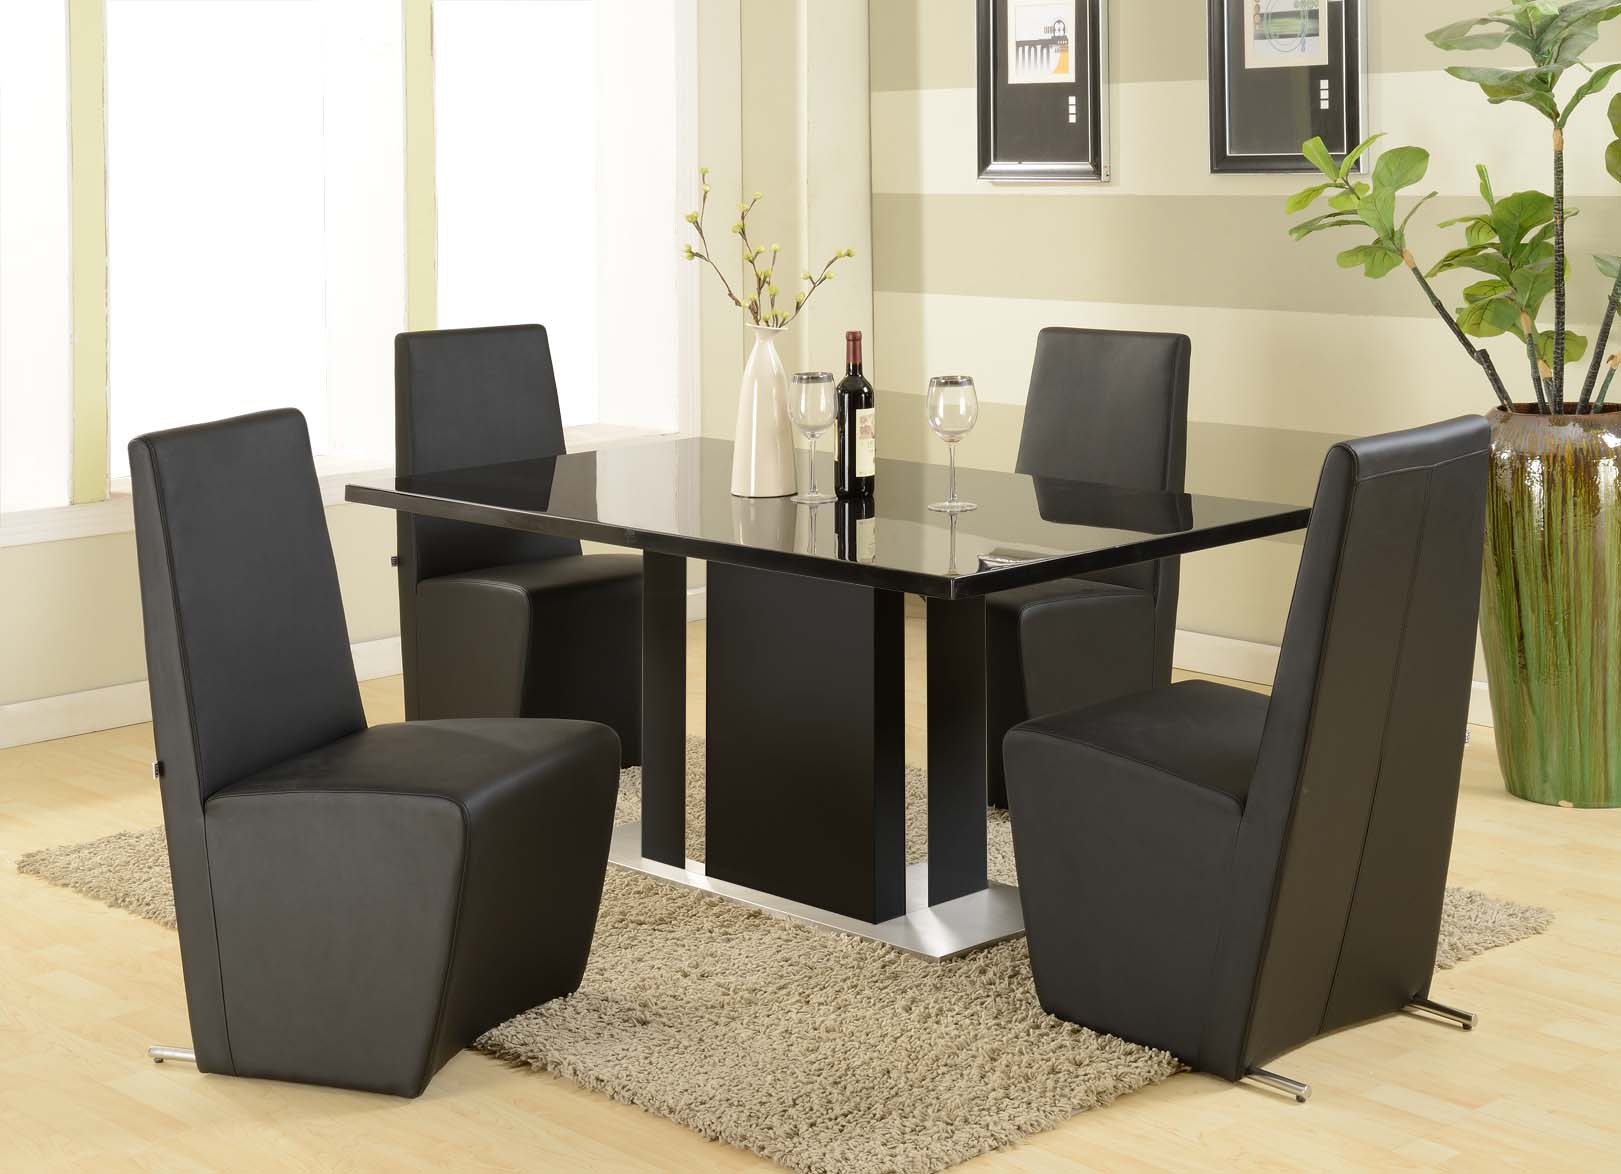 Modern furniture table home design roosa for Contemporary furniture chairs